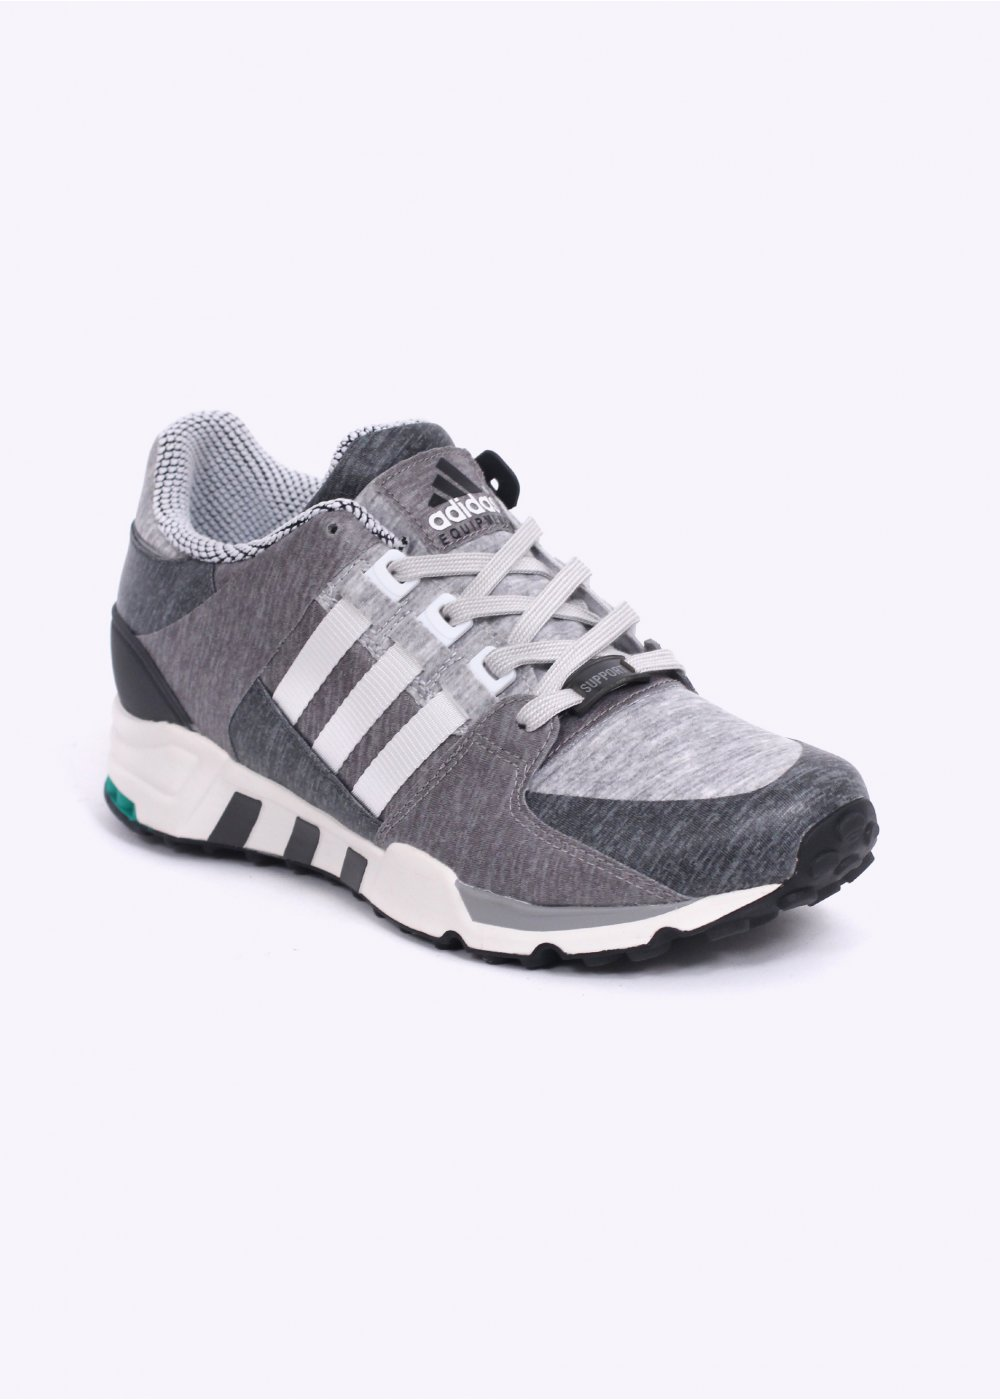 premium selection d5318 4fc24 adidas Originals Footwear EQT Equipment Running Support 93 'Portland'  Trainers - Core Heather / Vintage White